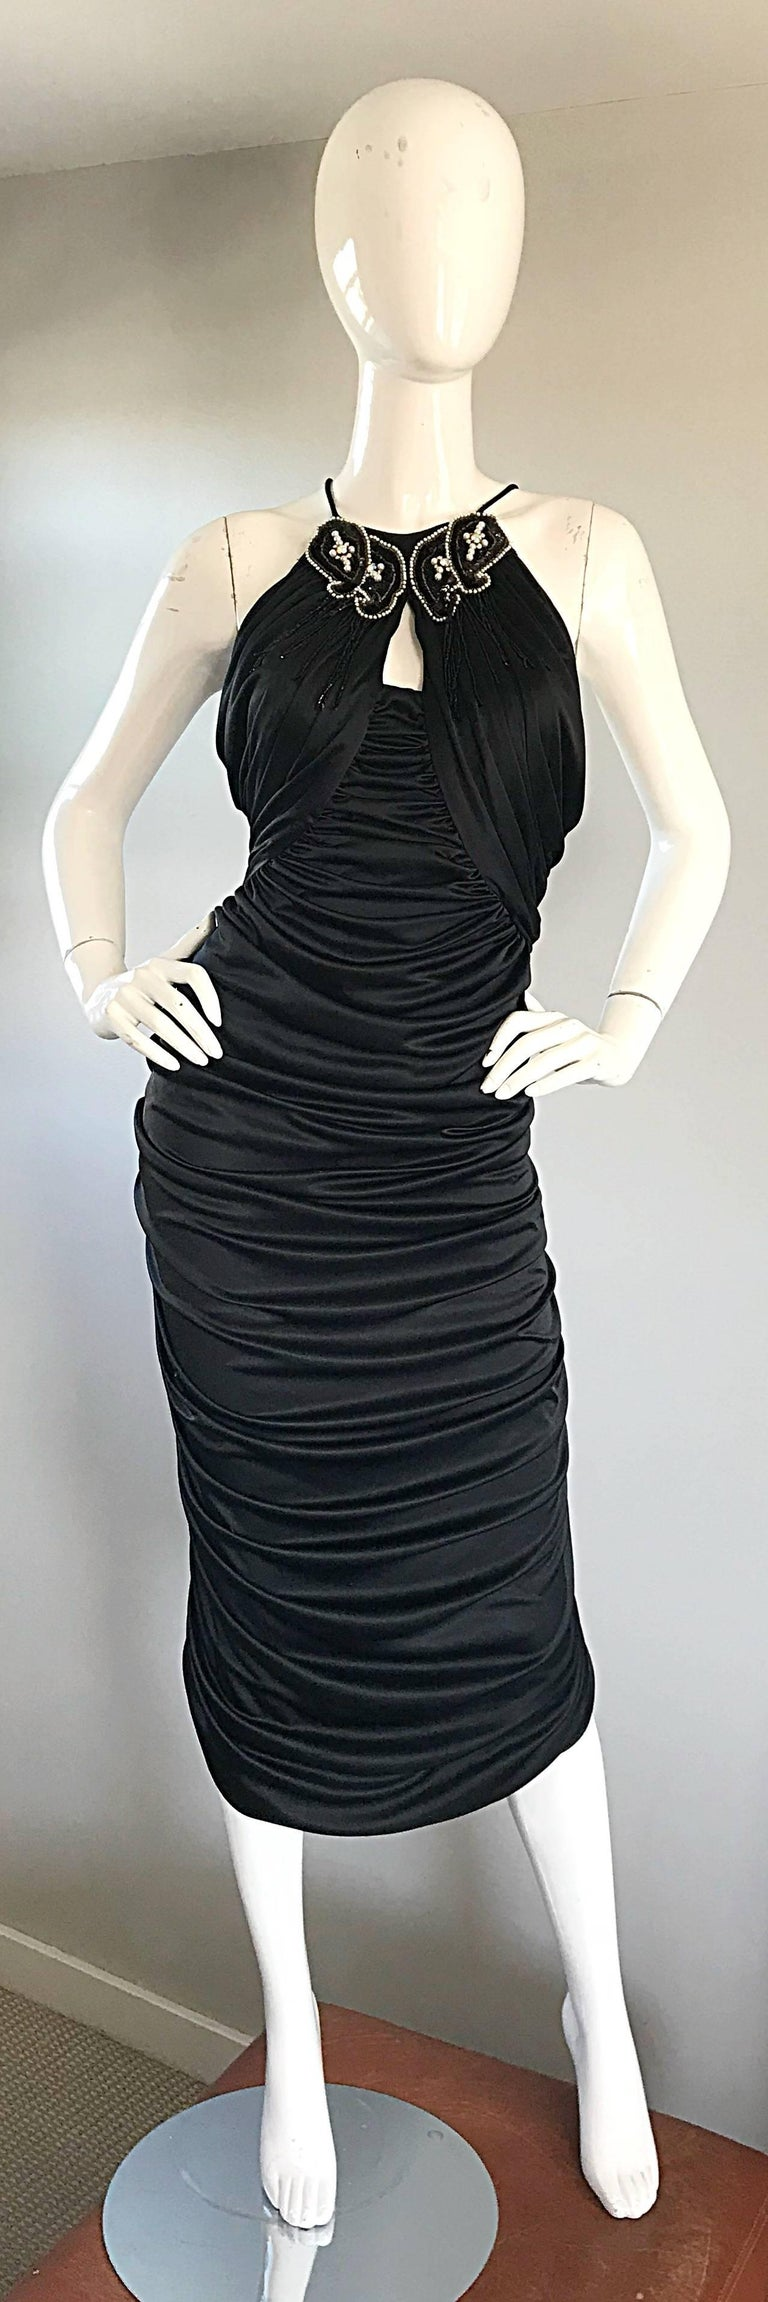 Sexy and super flattering SAMIR black ruched sleeveless cocktail dress! Features a peek-a-boo bust, encrusted with pearls, beads, seed beads and rhinestones. Flattering stretch jersey and ruching stretches to fit. Hidden zipper up the back.  In